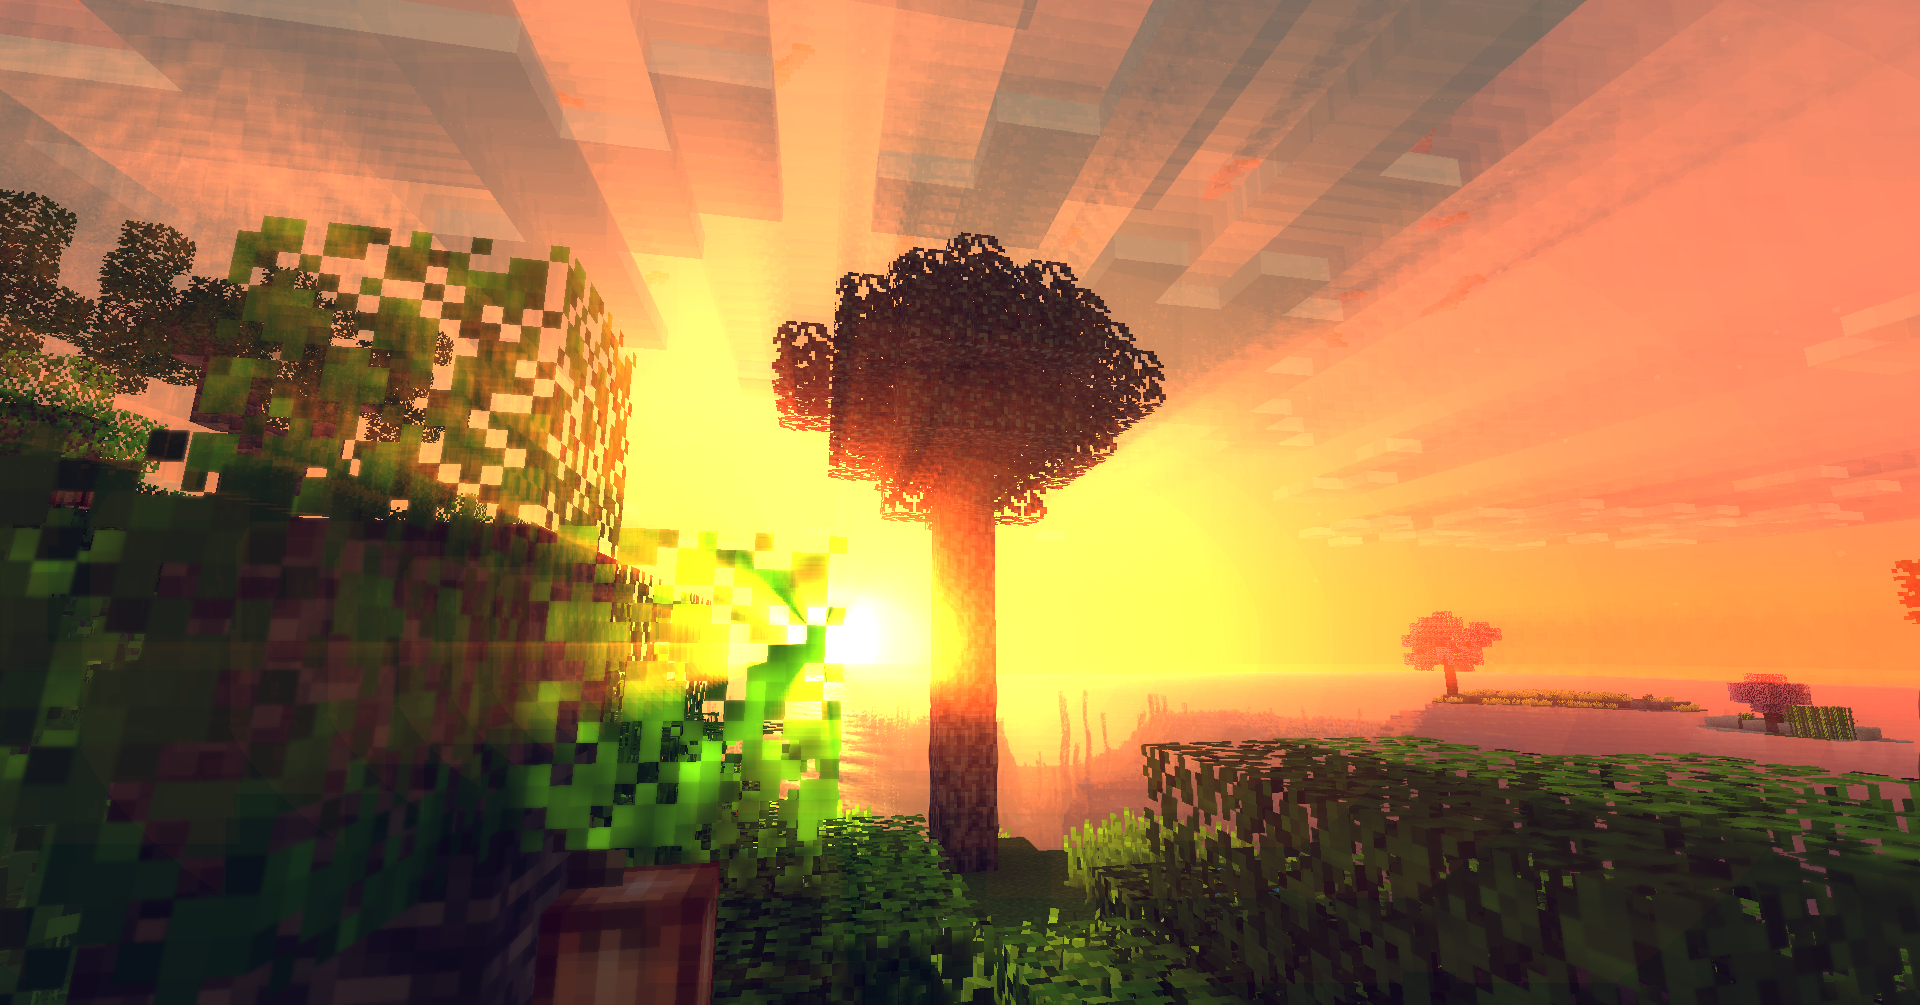 75ef2df7c0867bab1503d26622b08d7e [1.7.10] Ancient Trees Mod Download